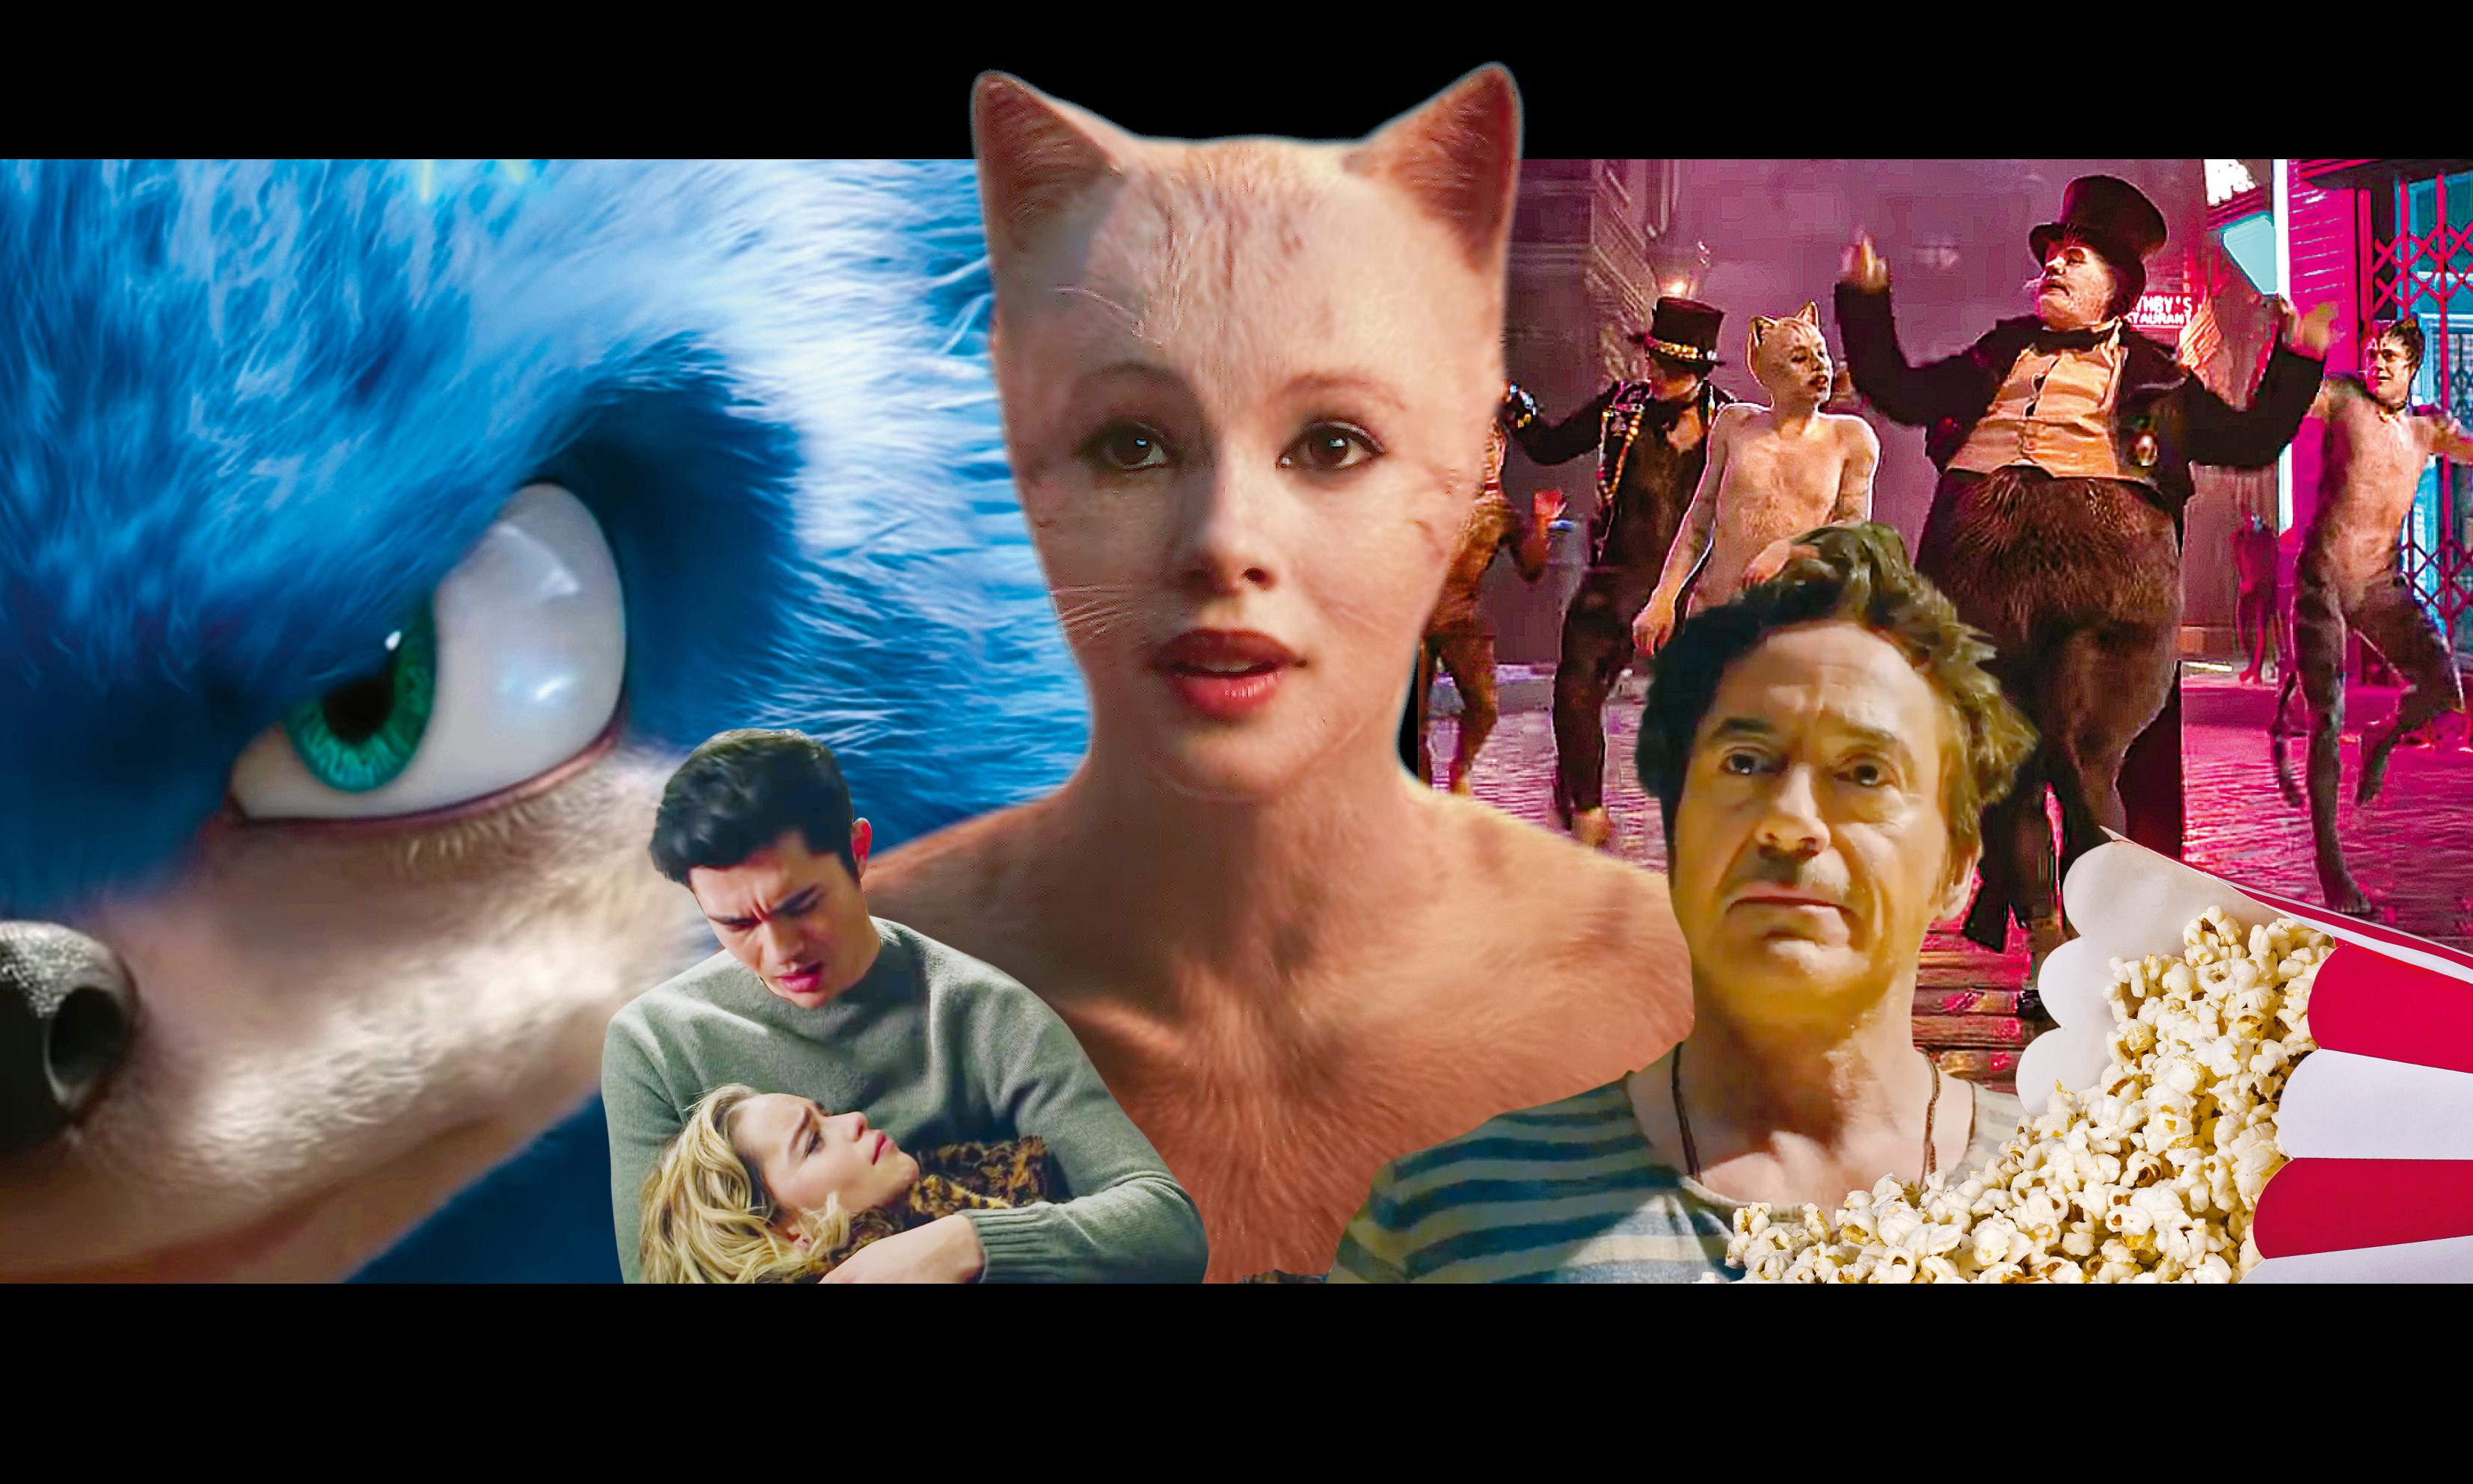 From Sonic to Cats: is 2019 the worst year for trailers ever?